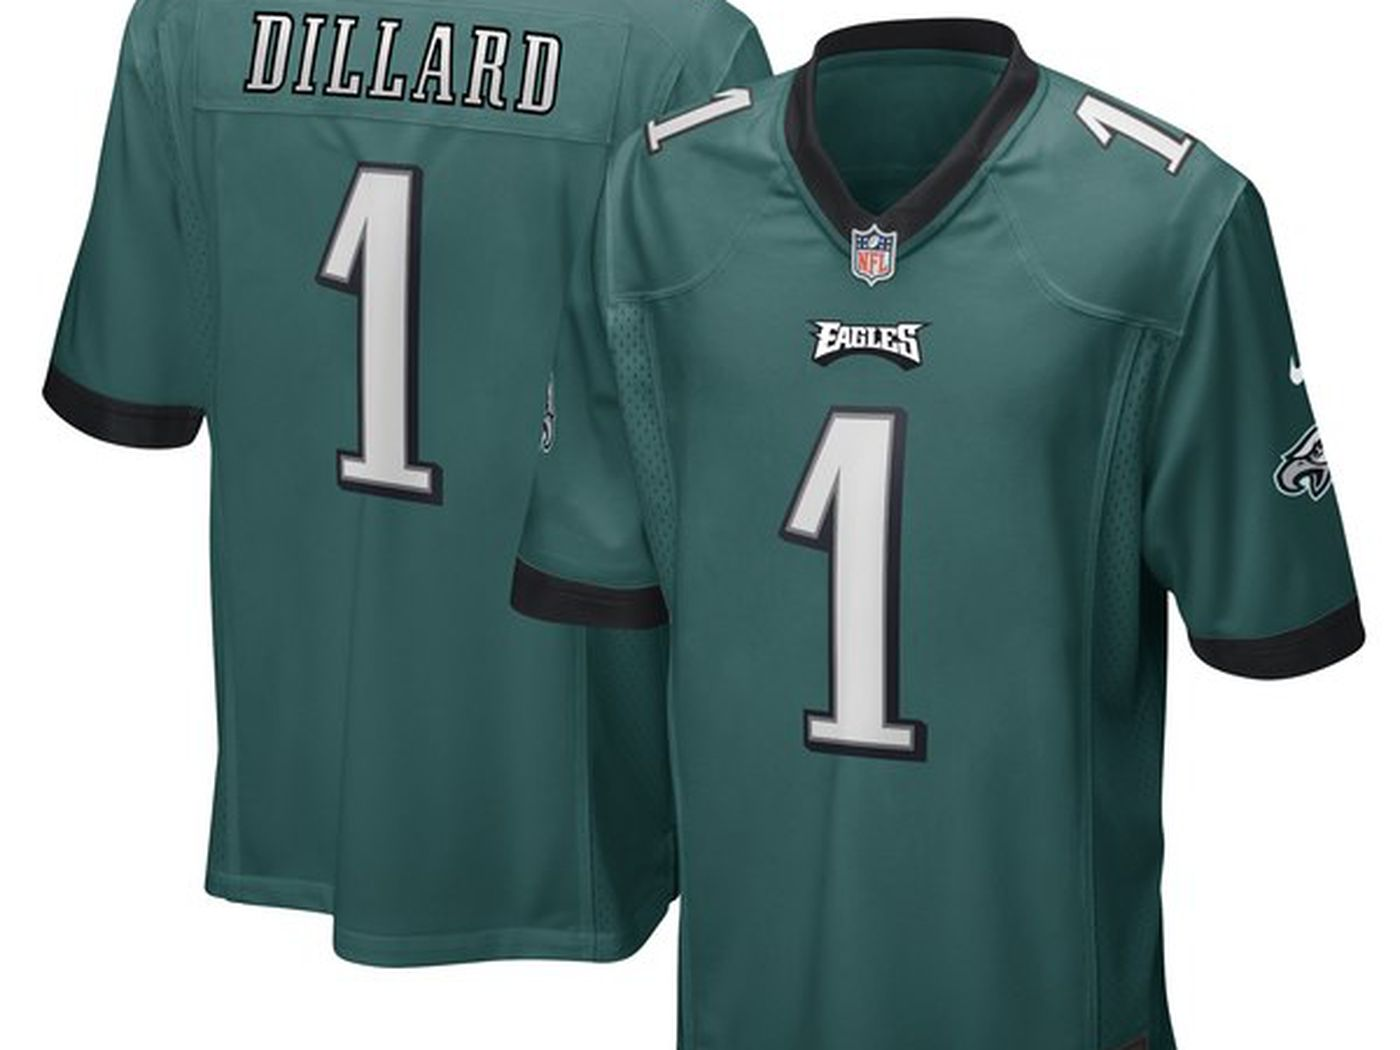 c9002b77 Order your Eagles Andre Dillard jersey here - Bleeding Green Nation